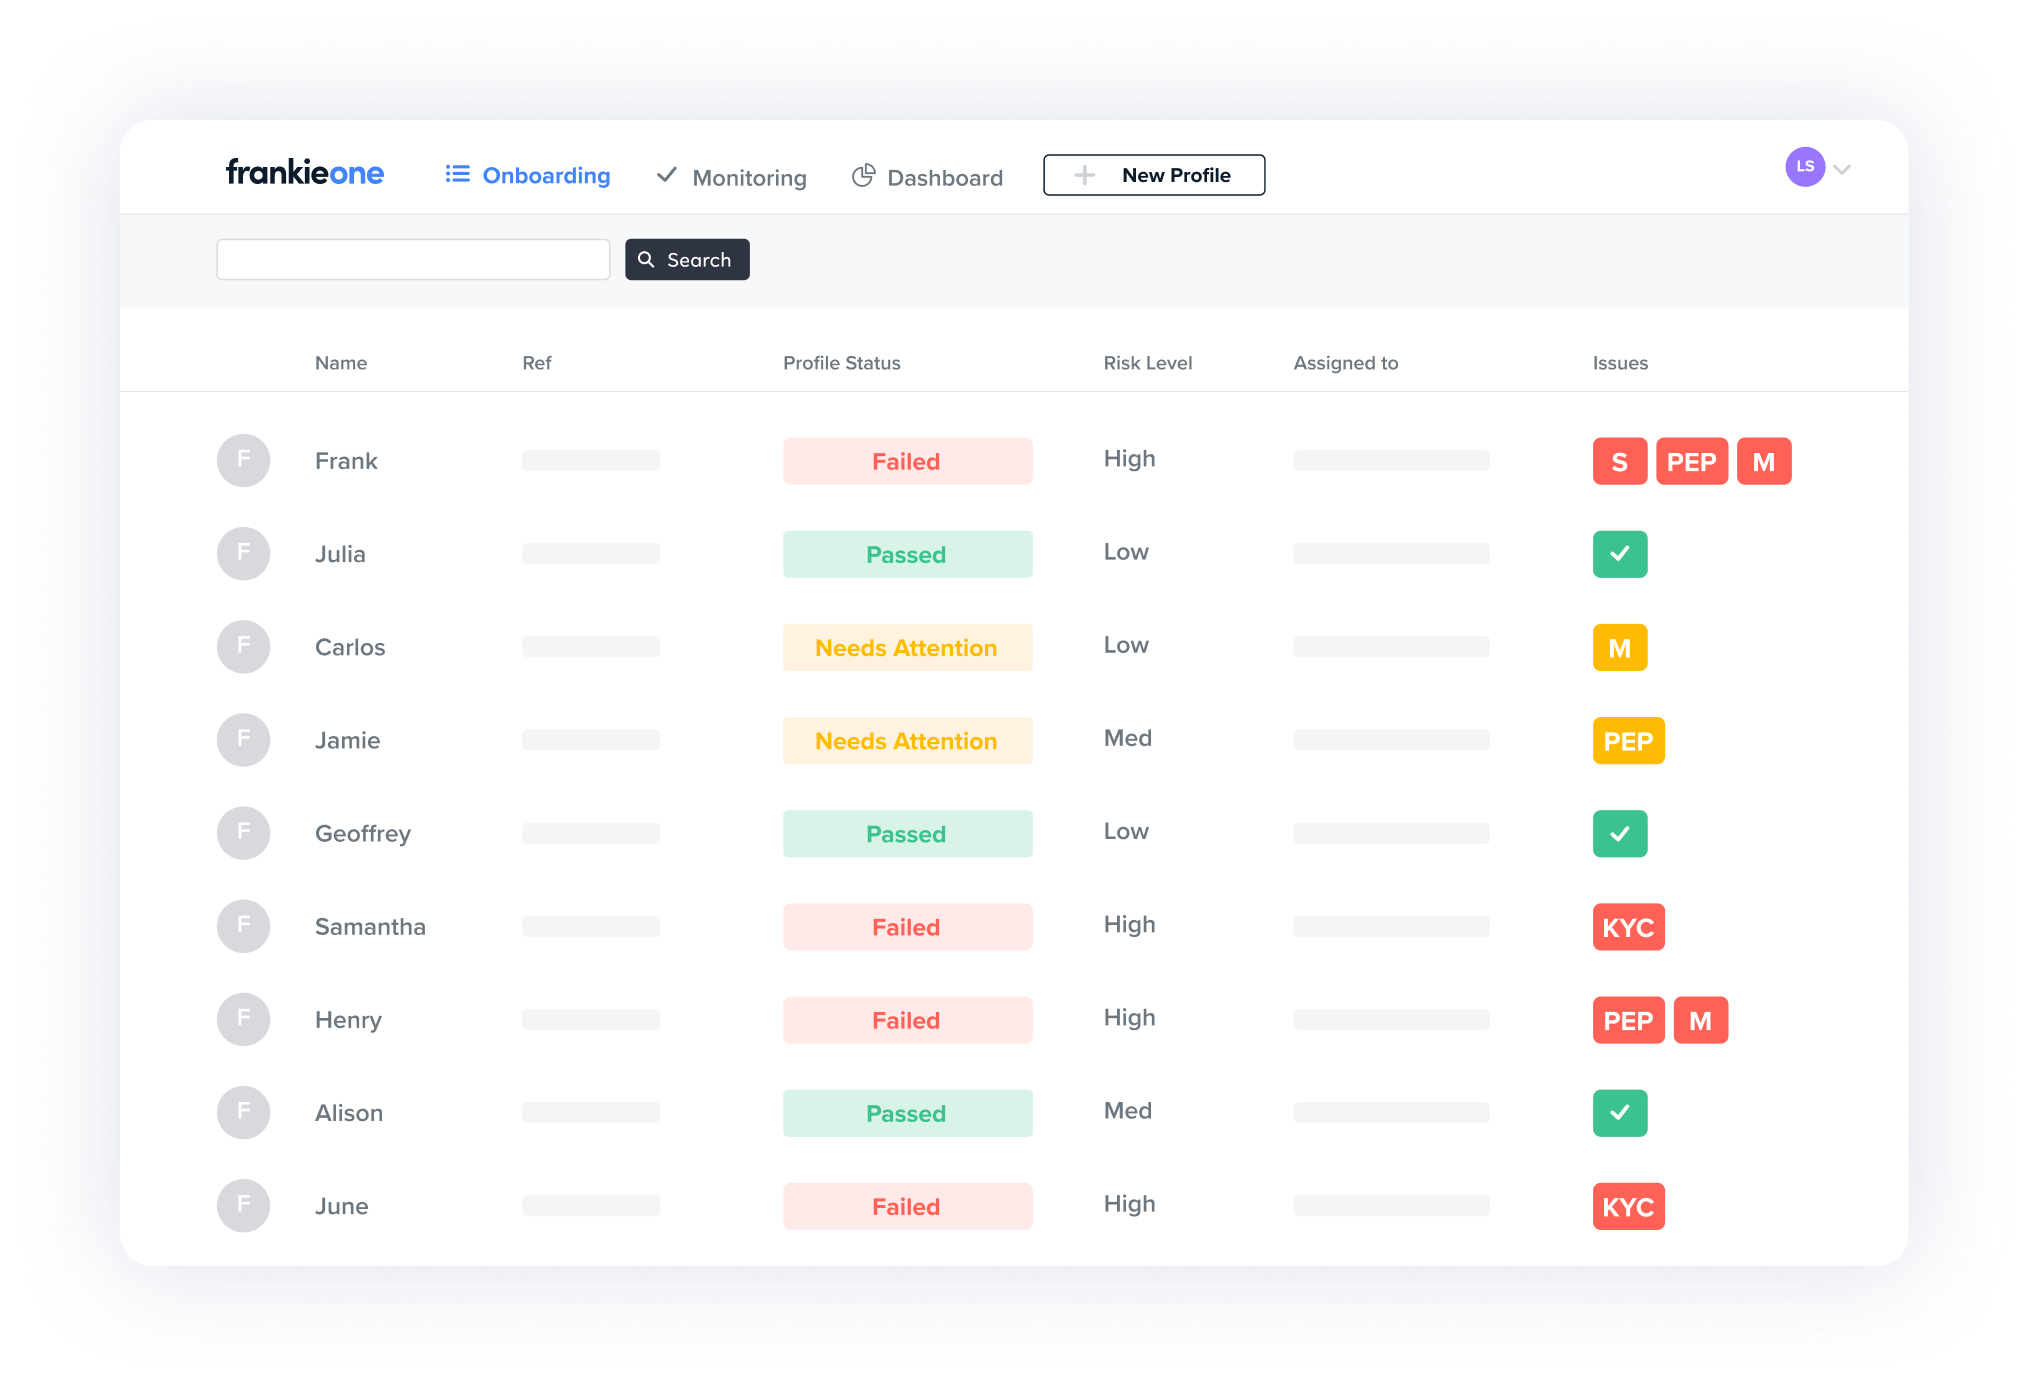 Unified customer view of onboarding